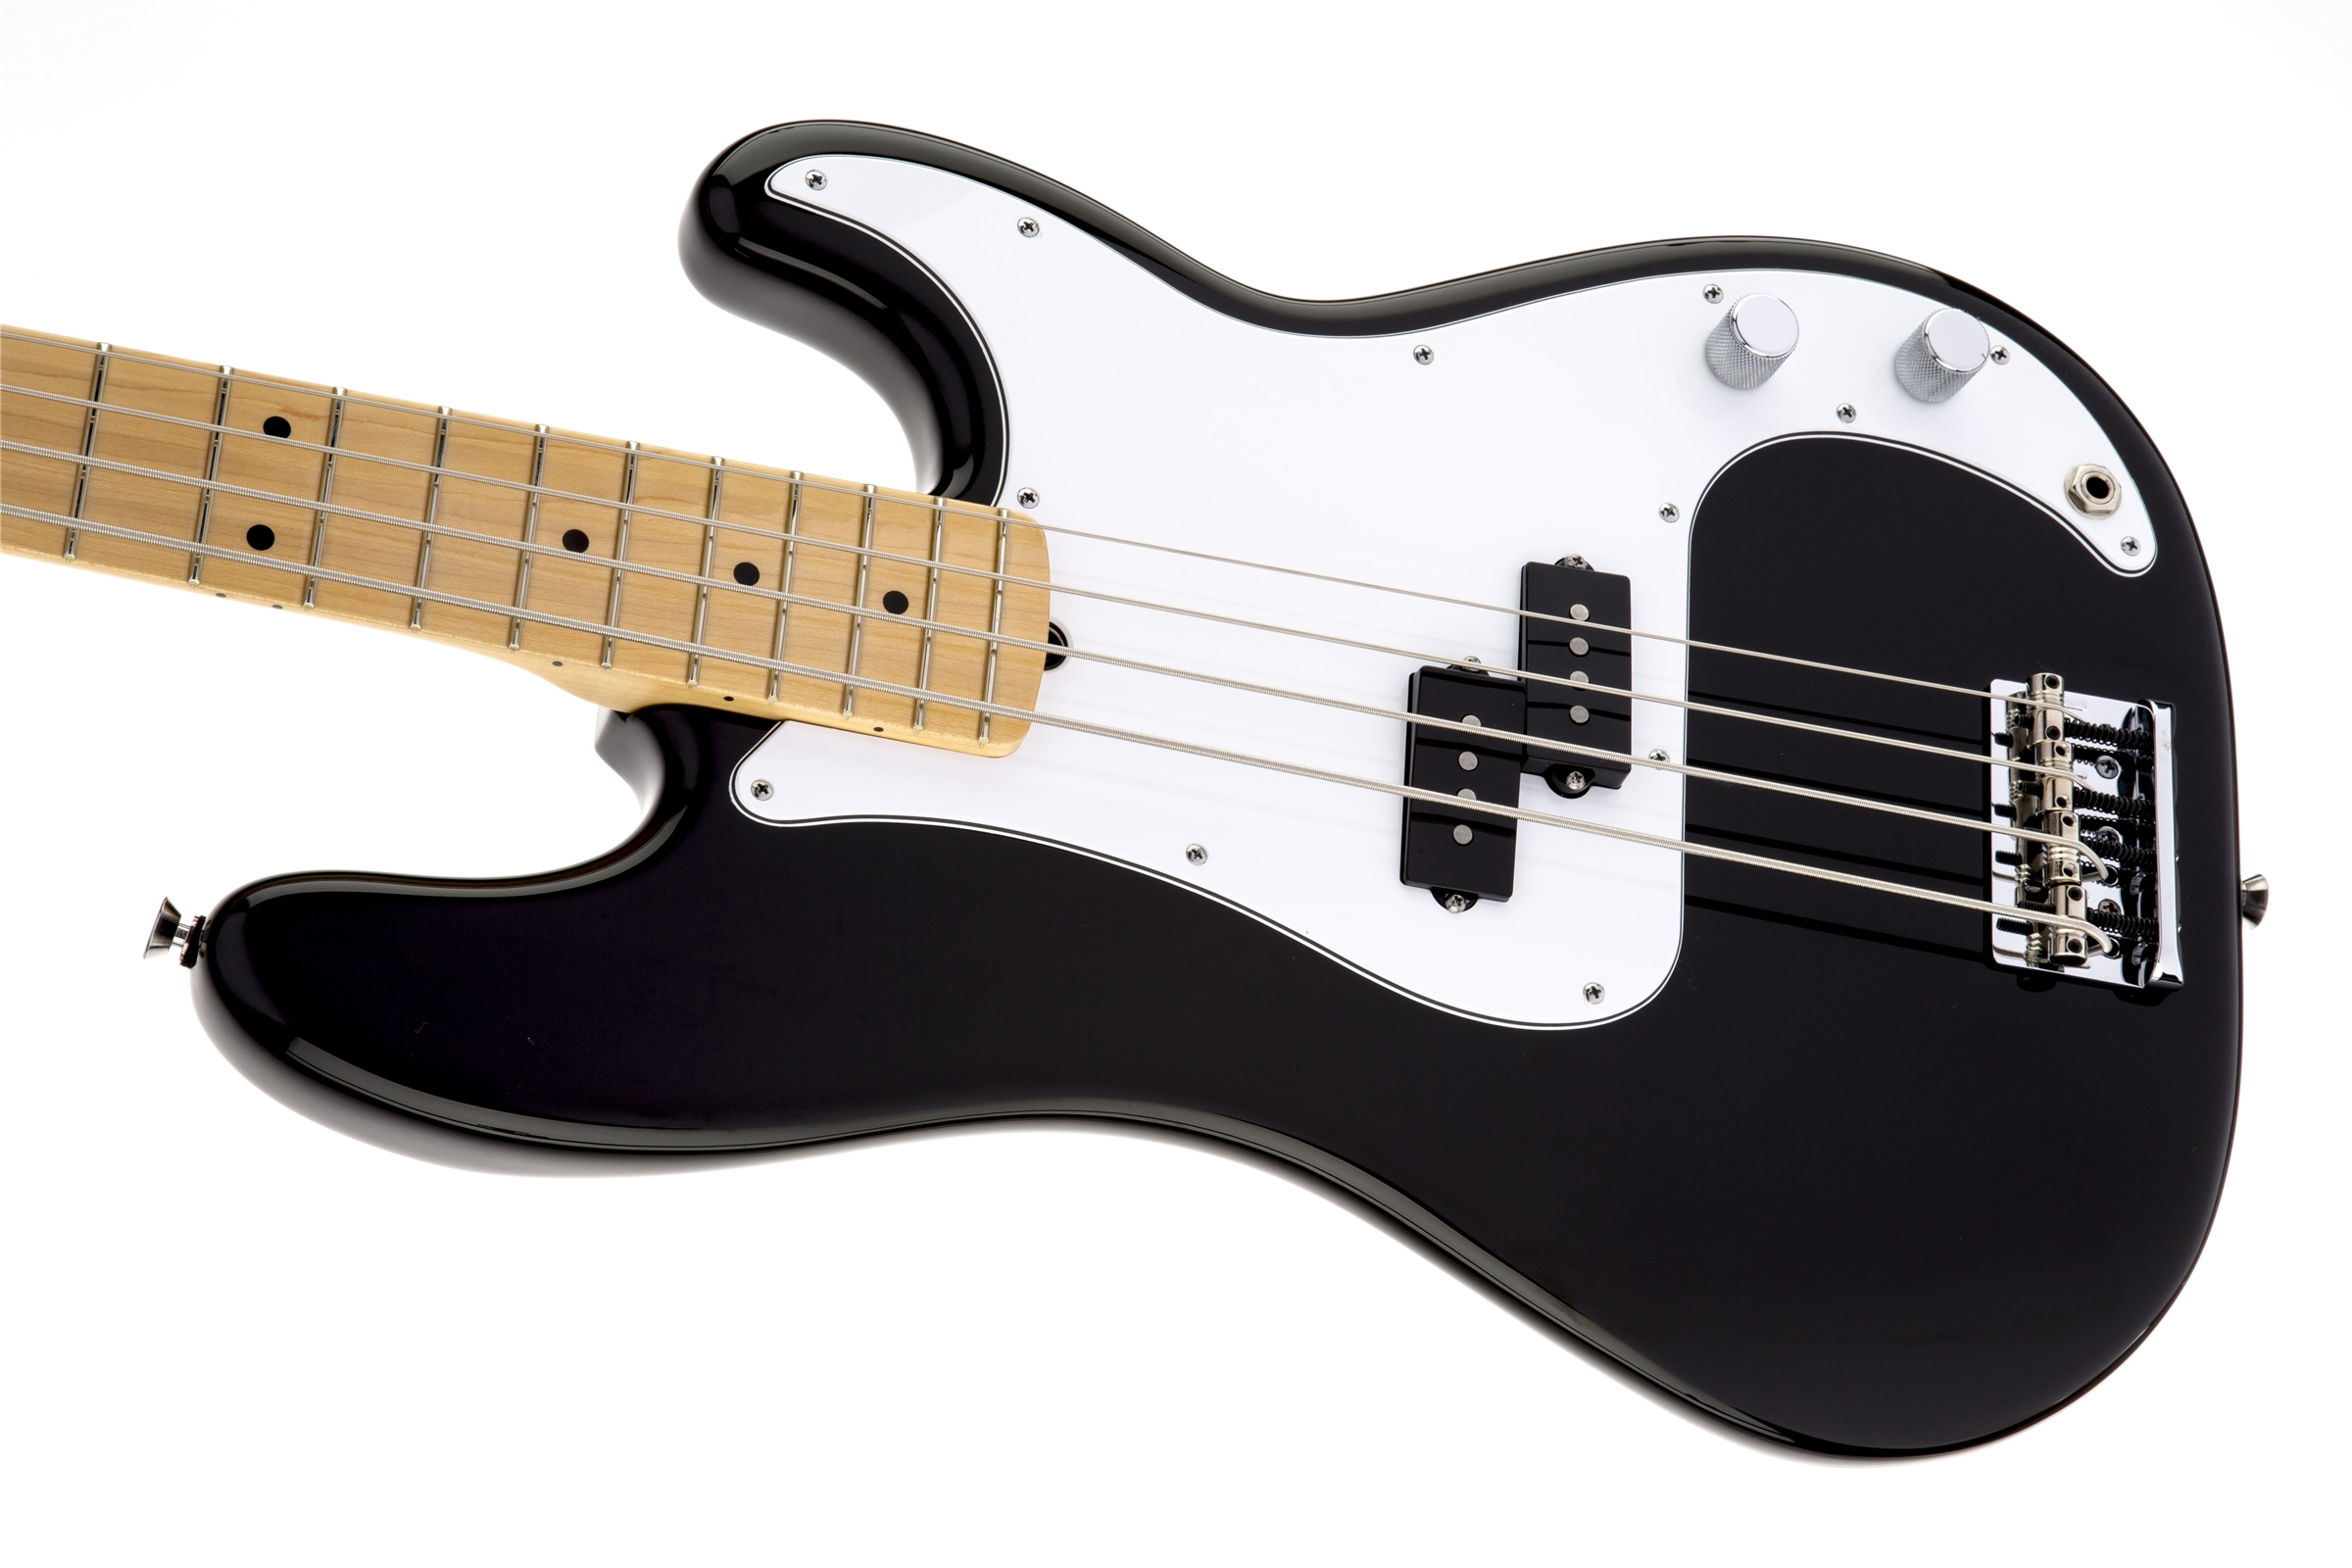 Fender American Standard Precision Bass® Black Maple Fingerboard Electric Bass Guitar